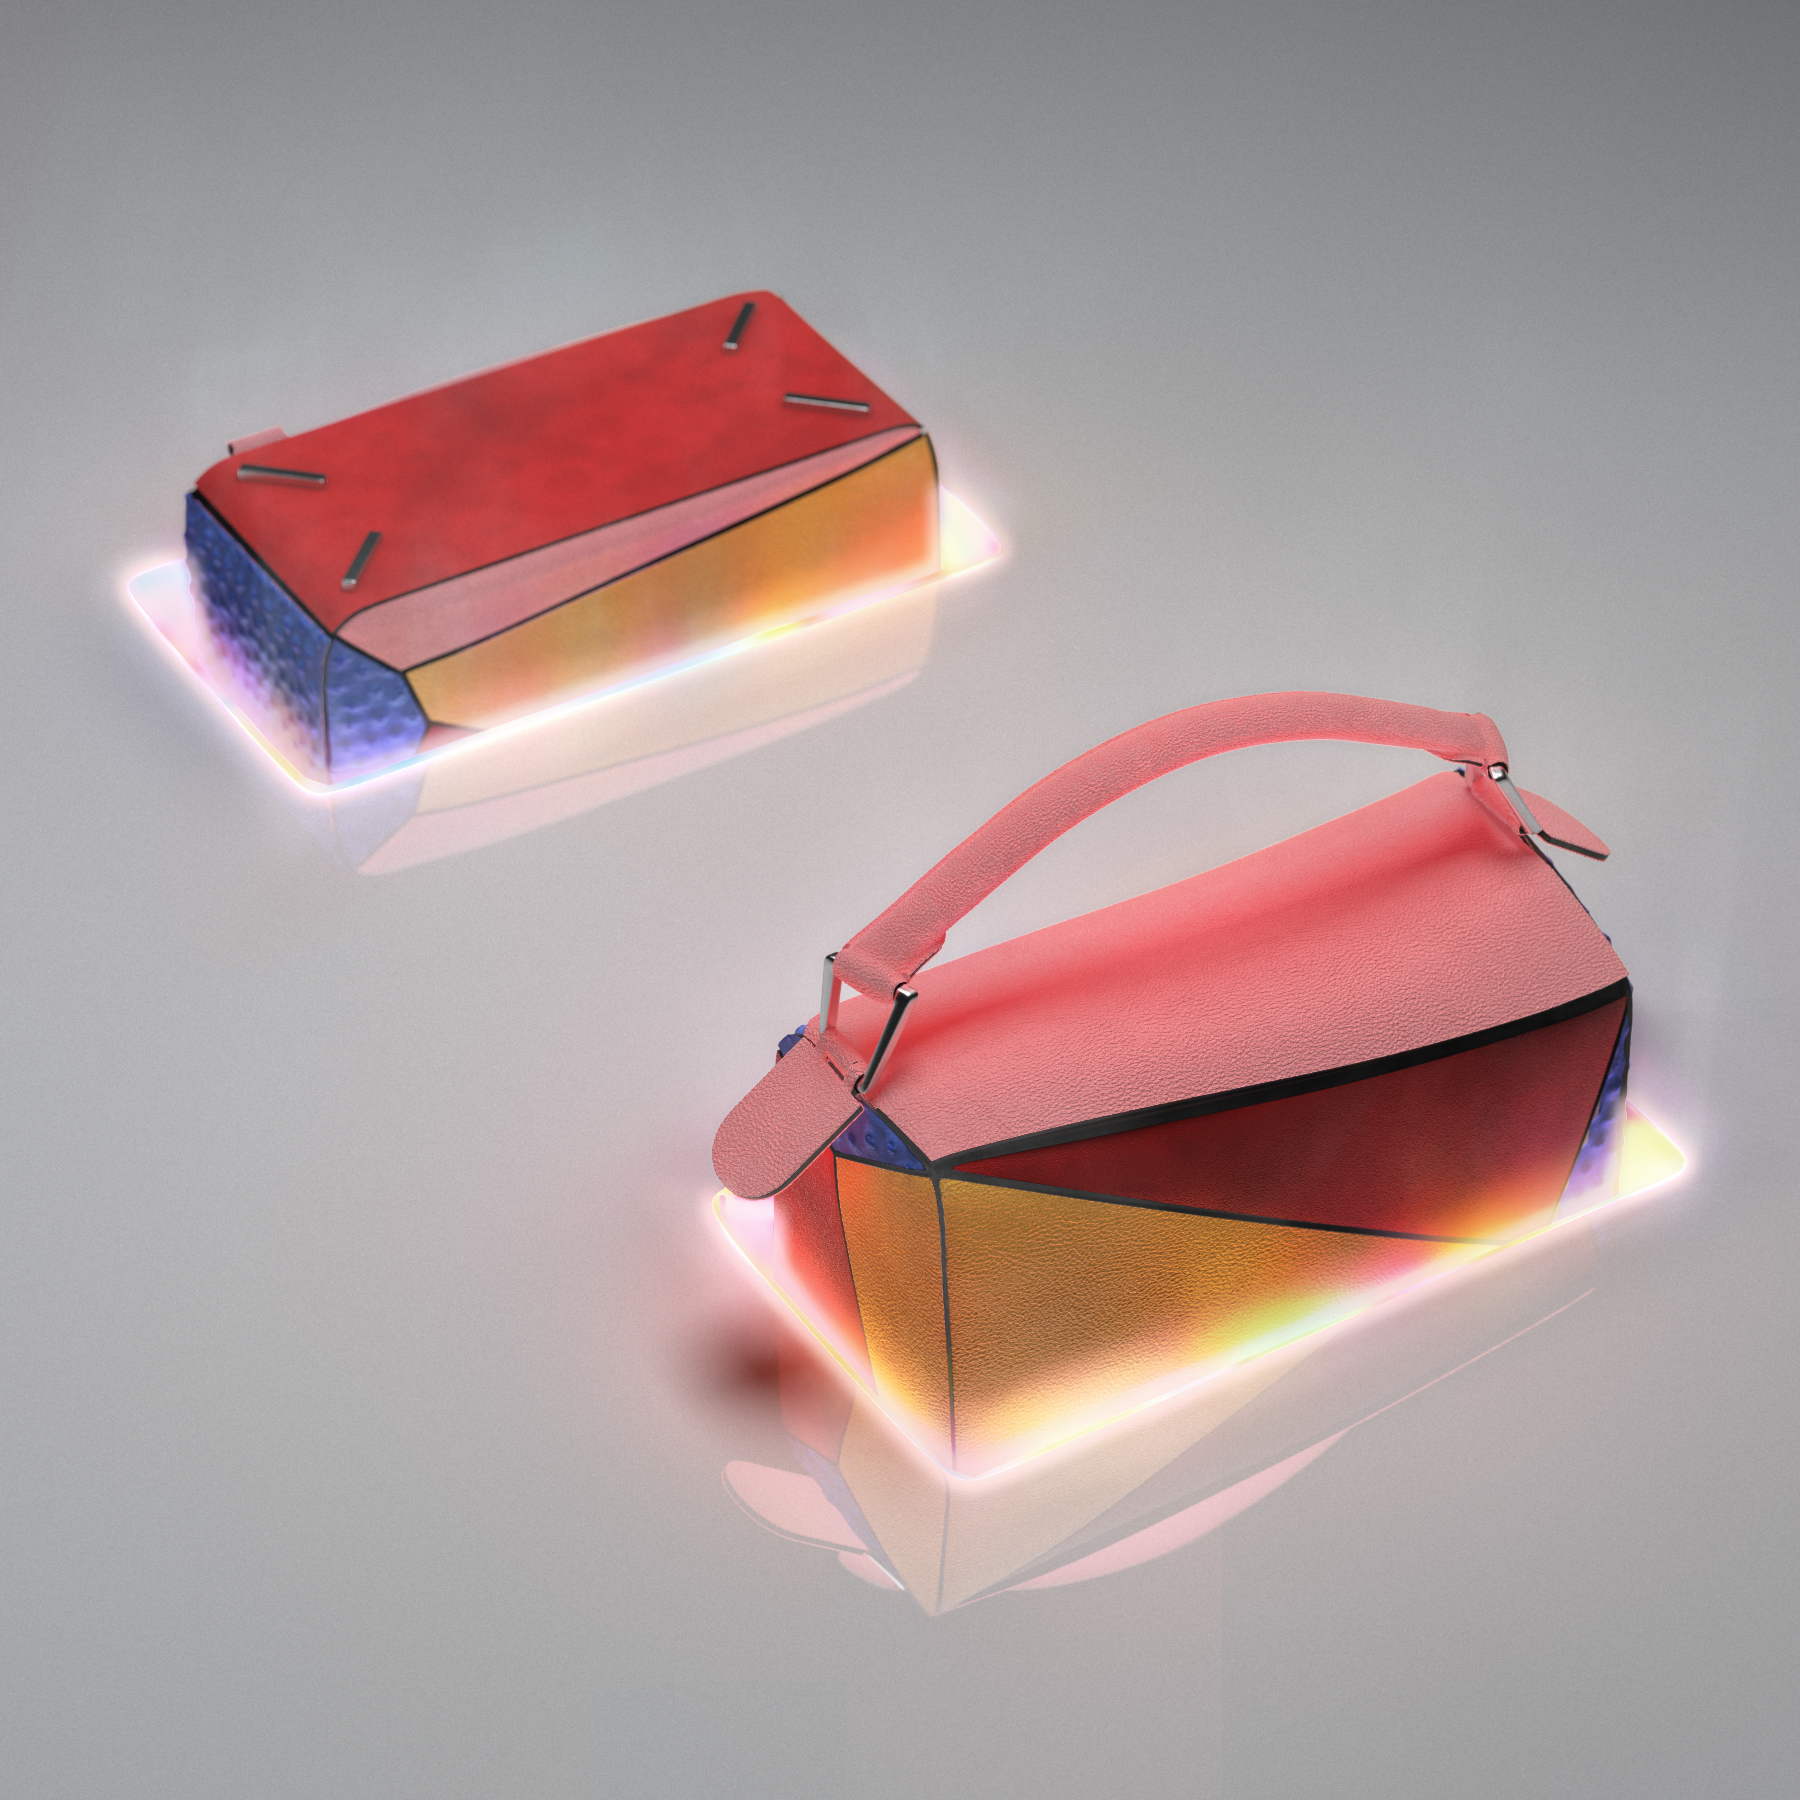 Perspective view of the bag going through light portals